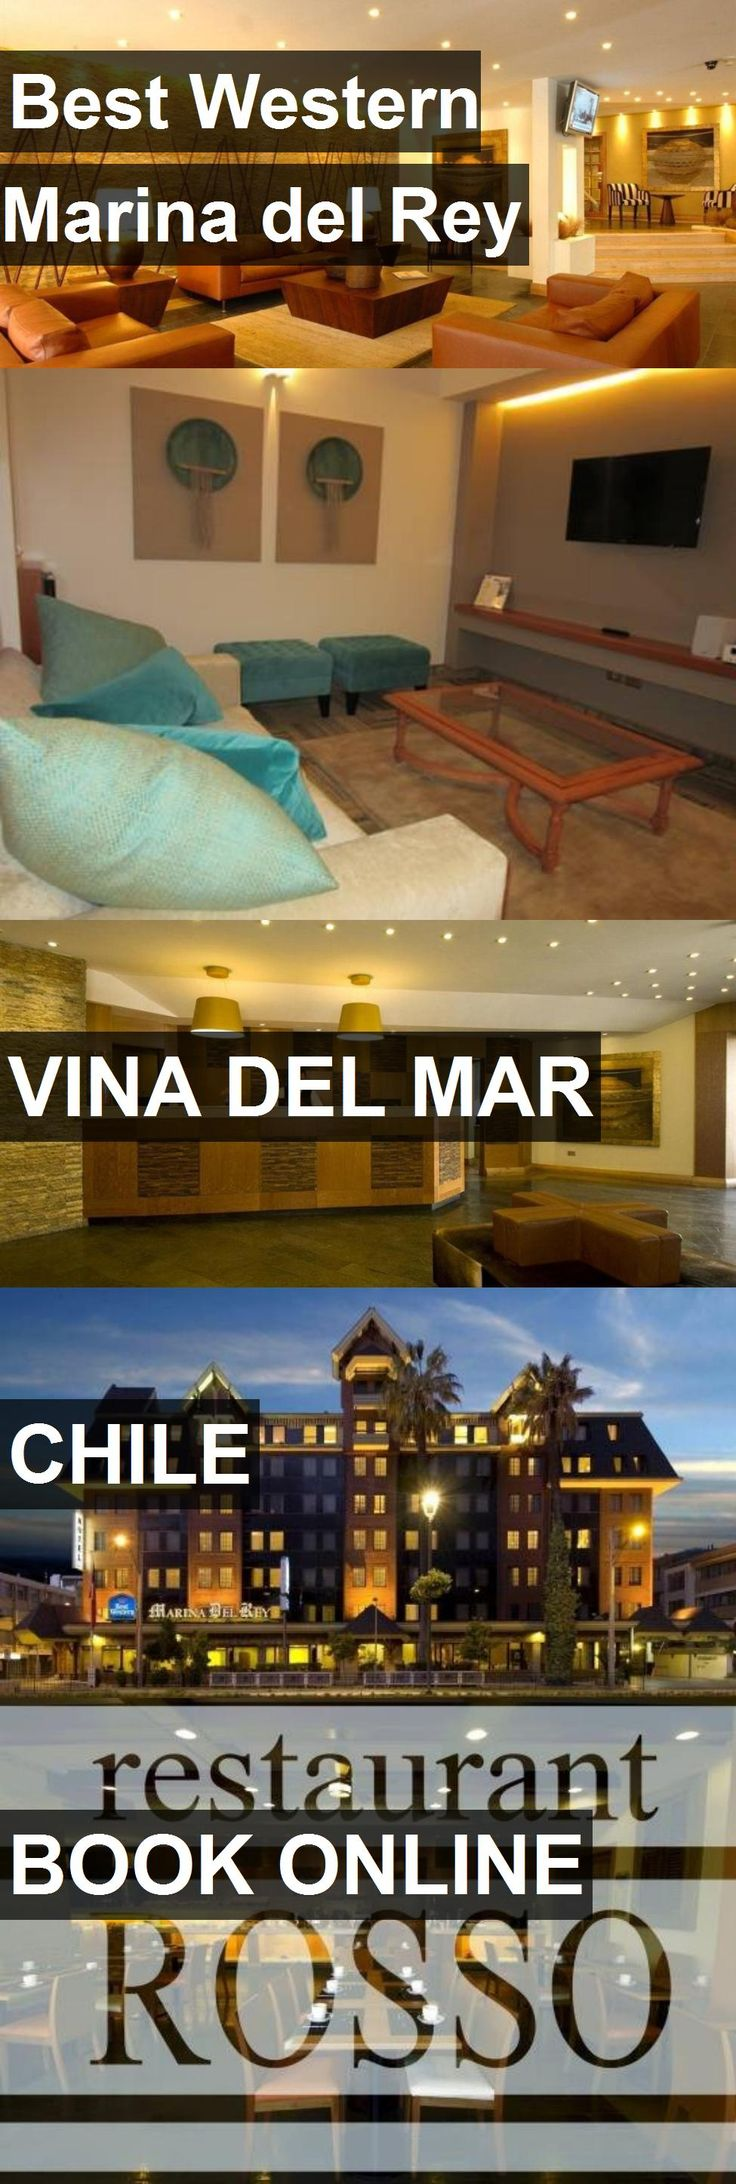 Hotel Best Western Marina del Rey in Vina Del Mar, Chile. For more information, photos, reviews and best prices please follow the link. #Chile #VinaDelMar #travel #vacation #hotel